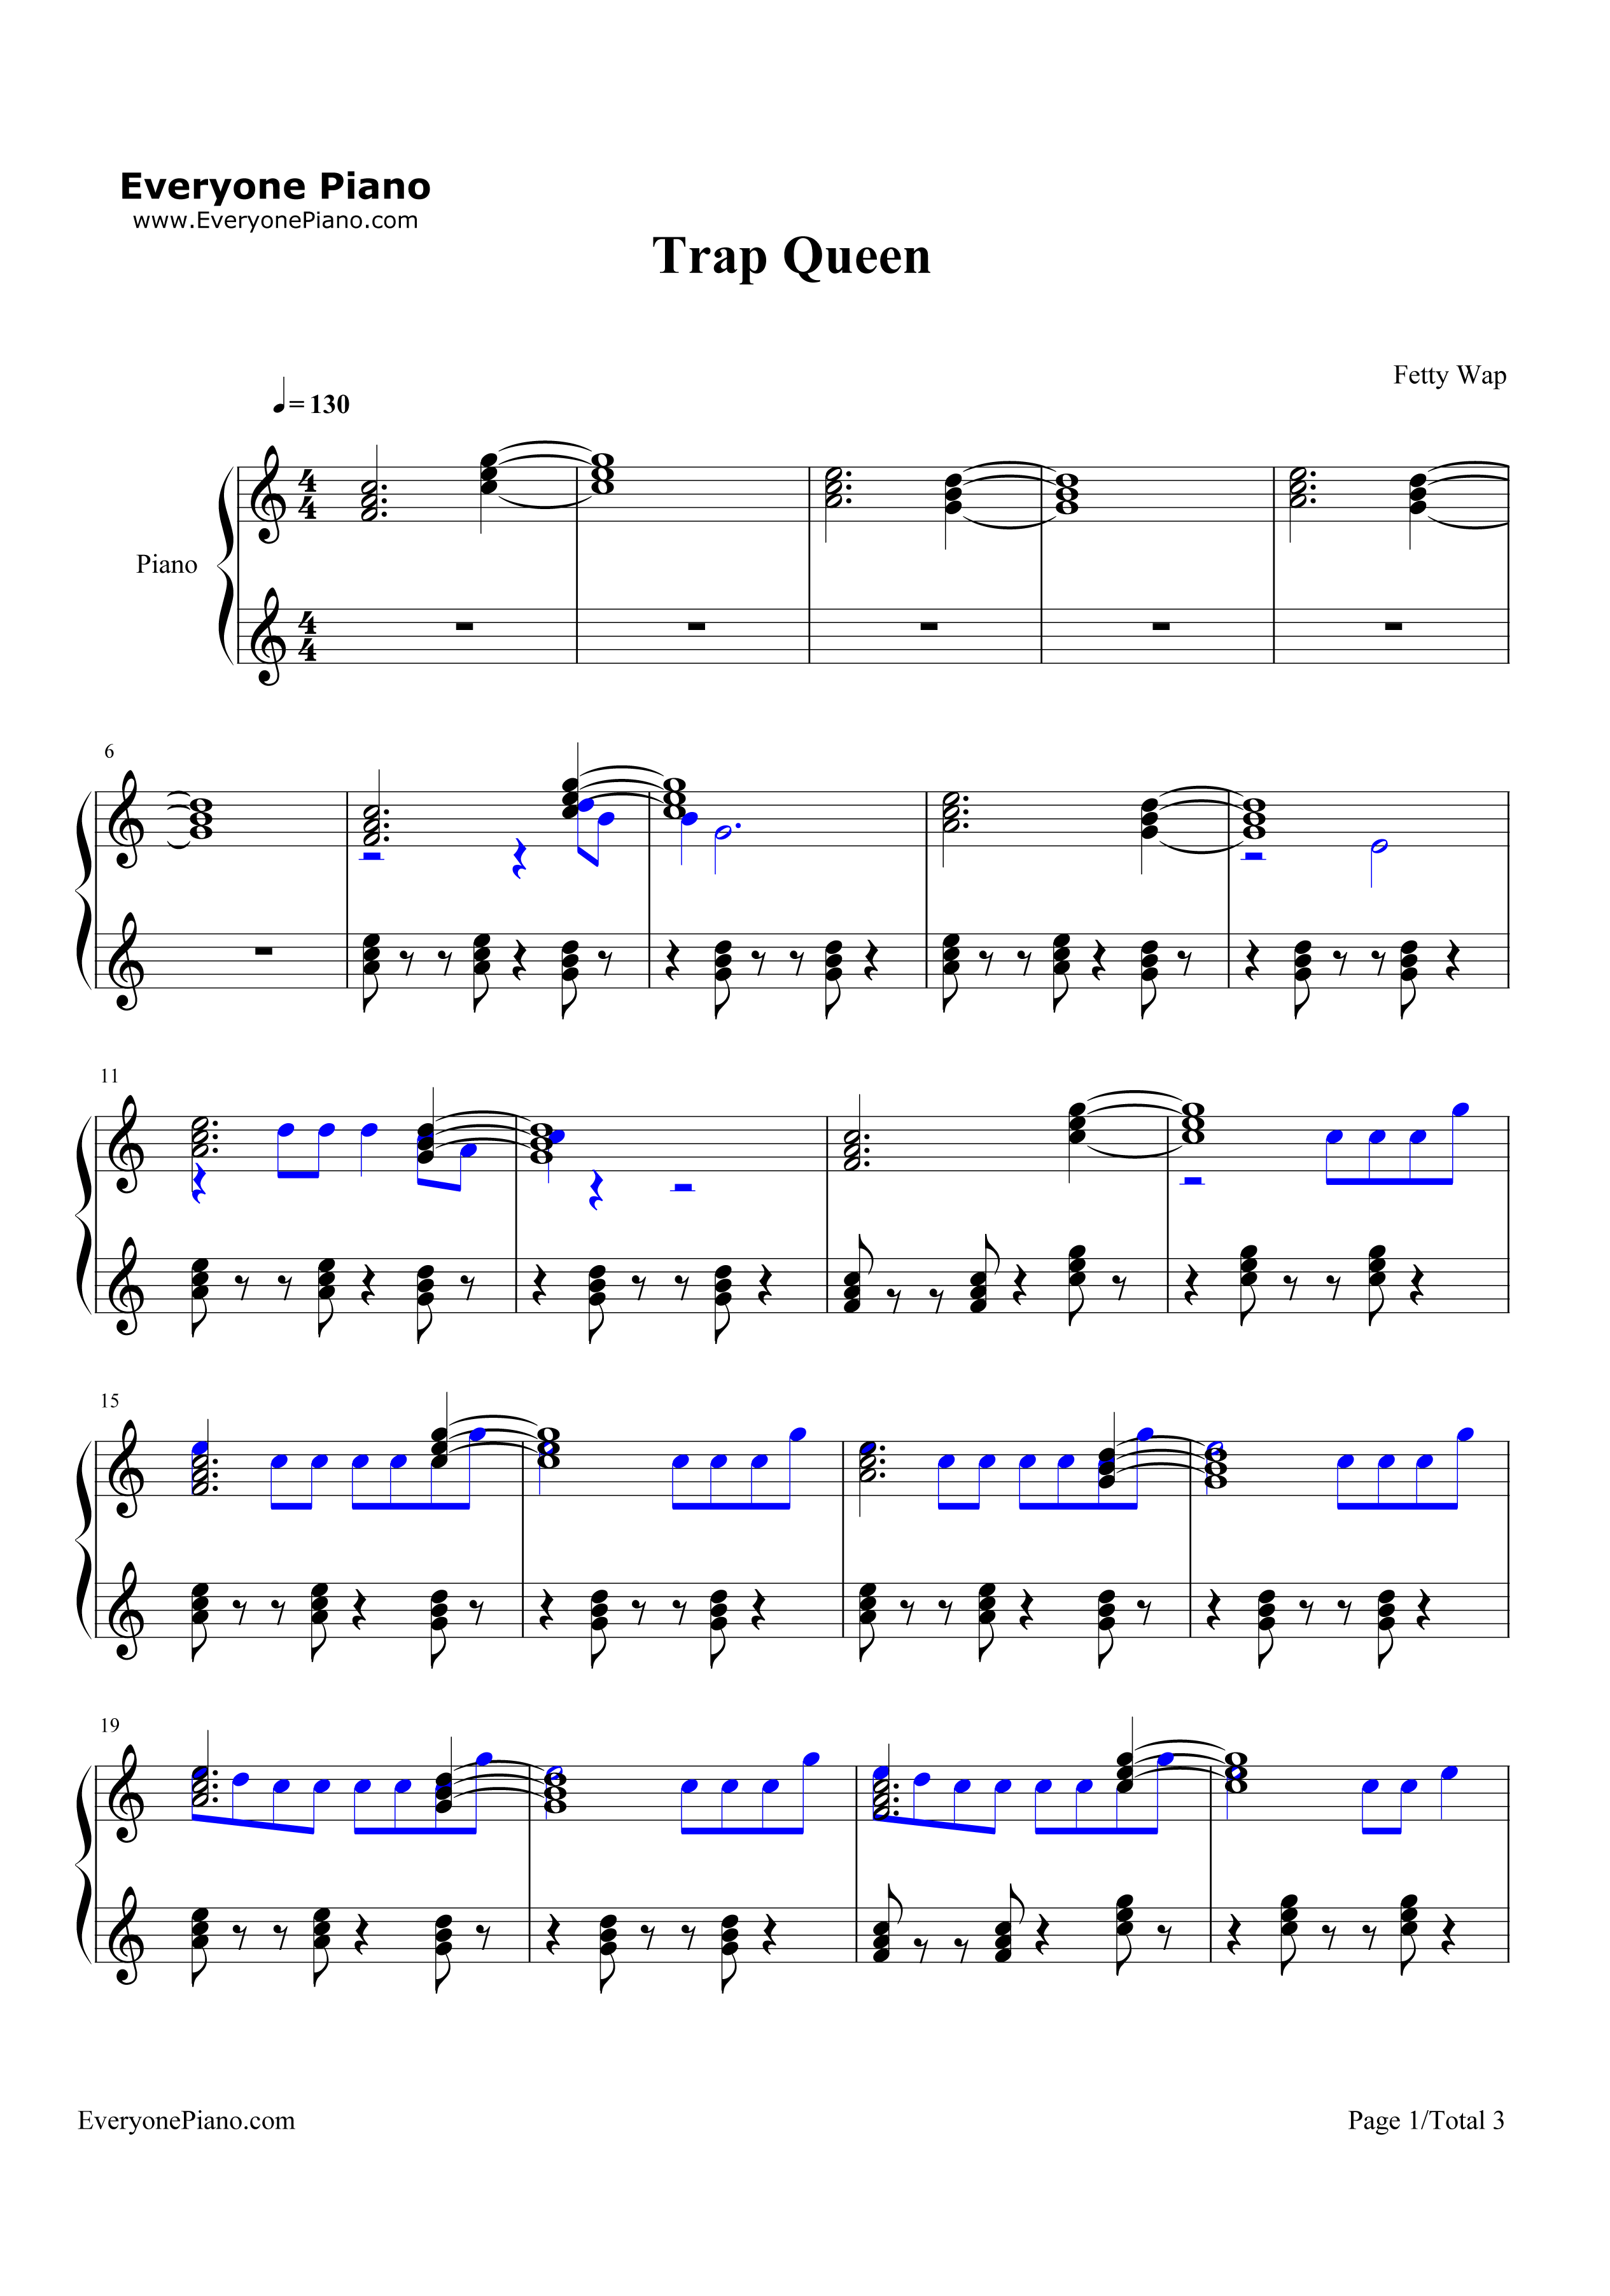 Trap Queen-Fetty Wap Stave Preview 1-Free Piano Sheet Music u0026 Piano Chords